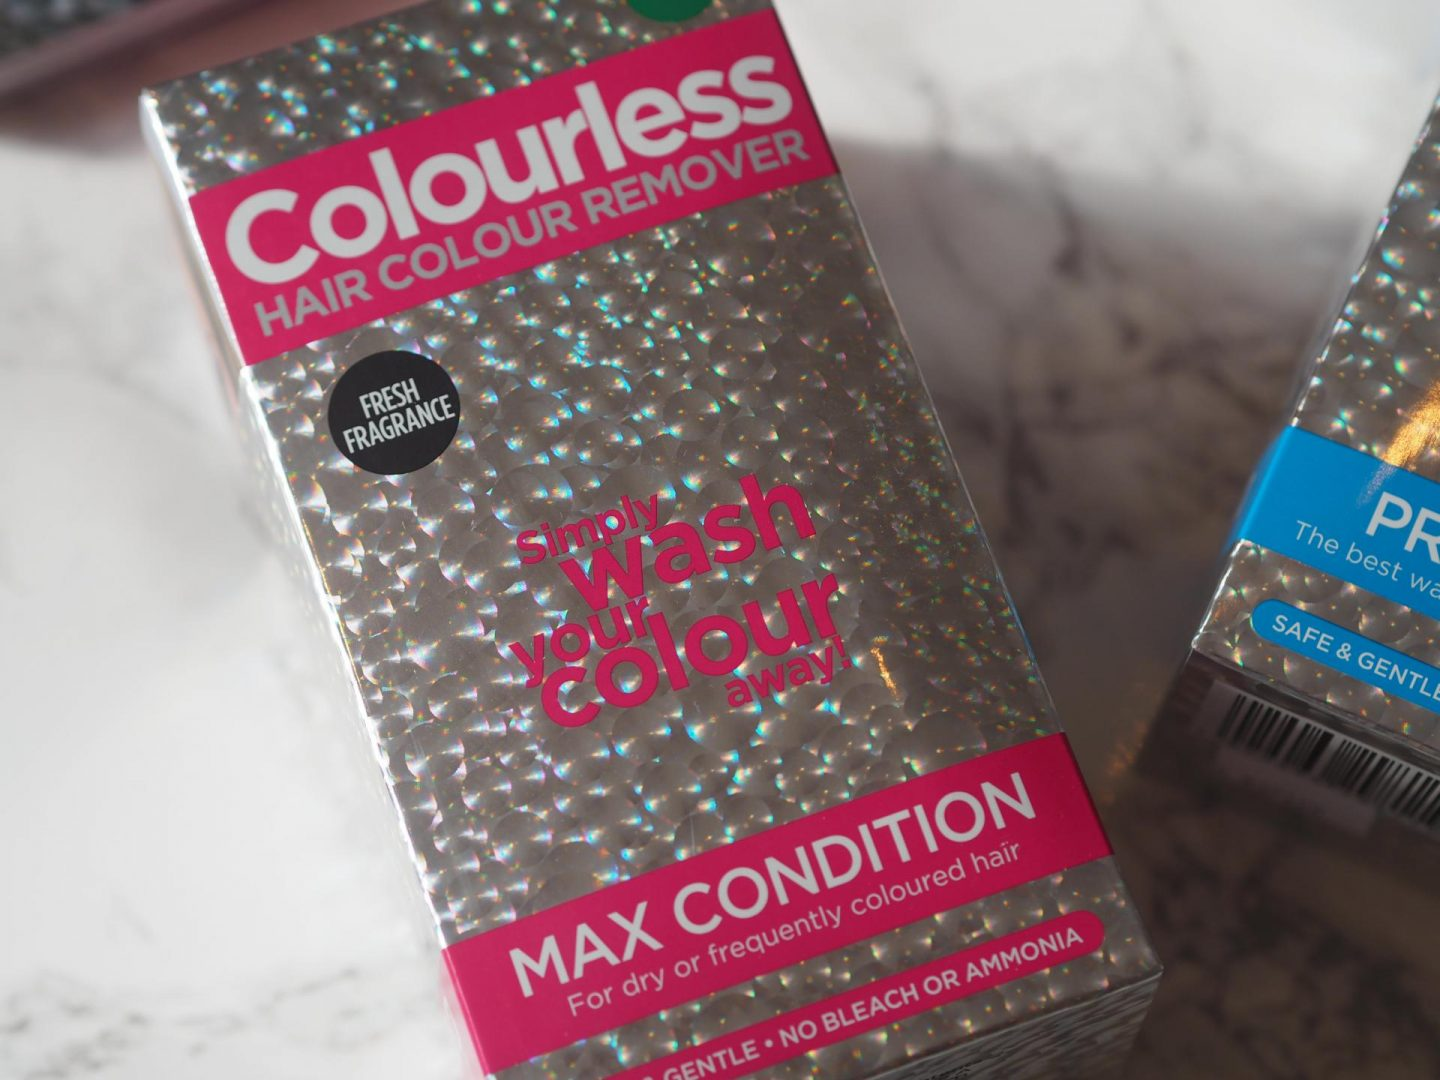 Removing Hair Colour With Colourless Beauty Rocks